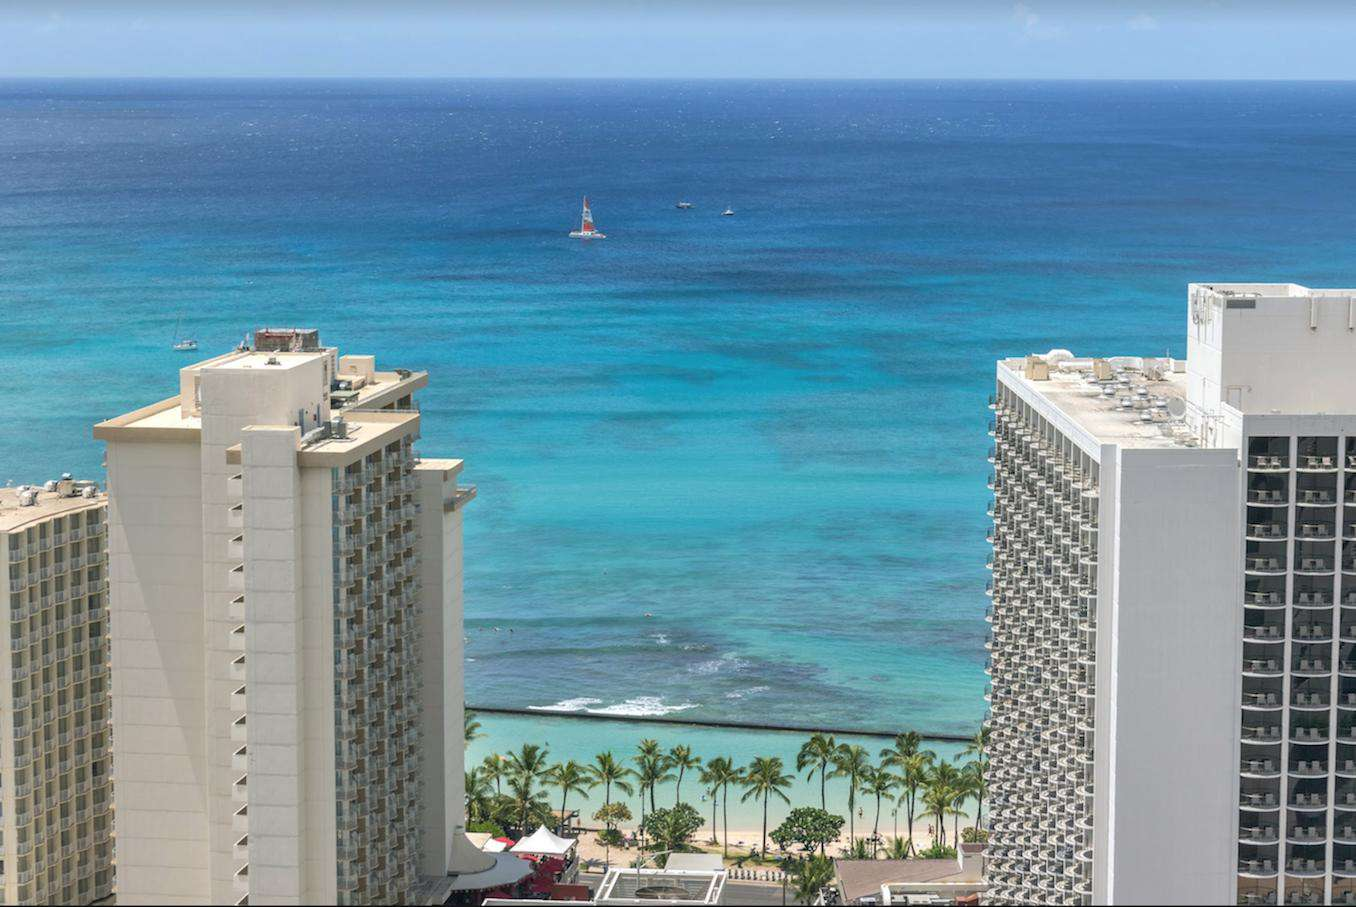 Waikiki right out the window